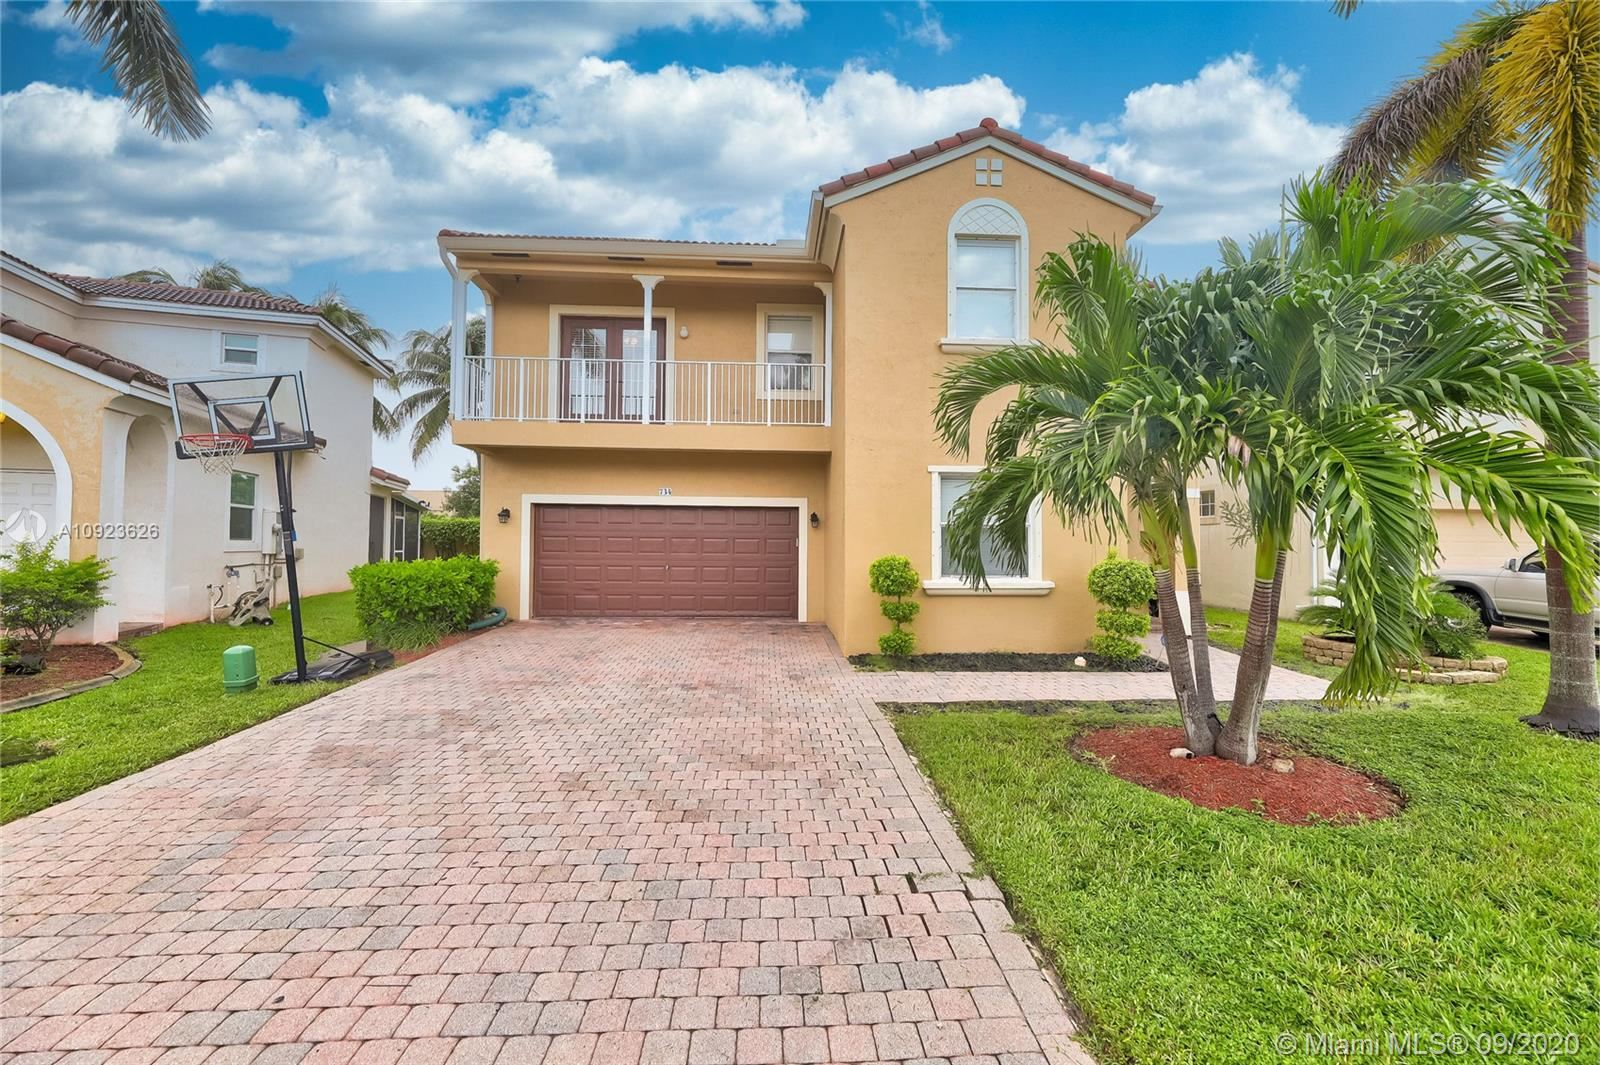 734 NW 127th Ave, Coral Springs, FL 33071 - #: A10923626